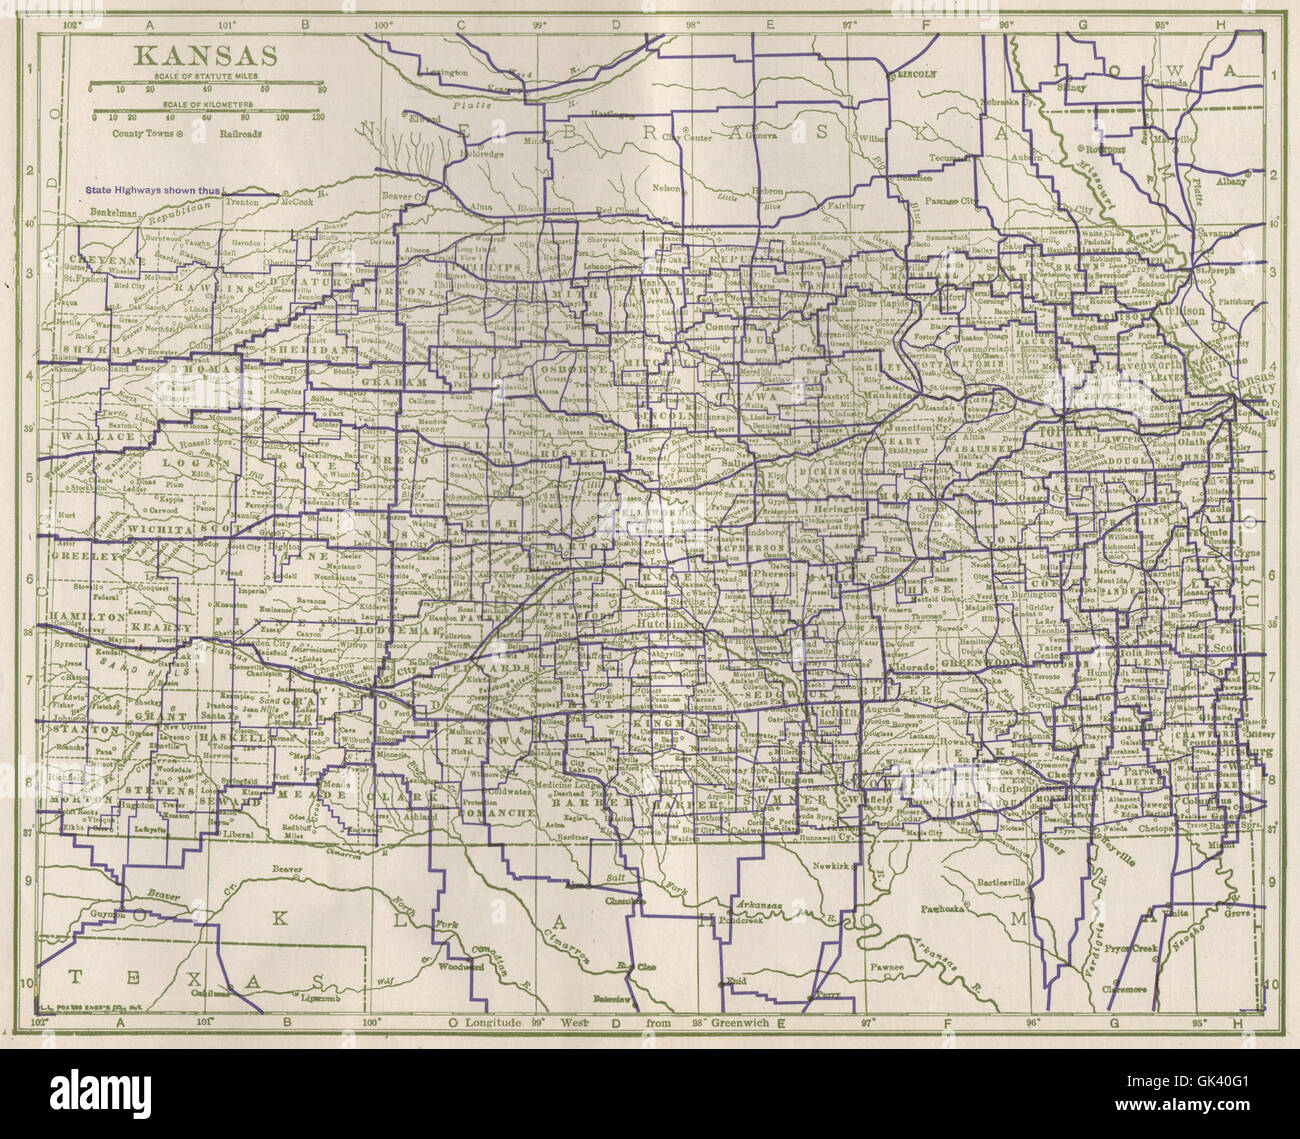 Kansas State Highways. POATES, 1925 vintage map Stock Photo ... on missouri map, kansas small town map, printable kansas map, kansas interstate map, kansas elevation map, the state map, usa map, herington kansas map, colorado map, kansas lakes map, arkansas map, kansas counties map, kansas road map, kansas map with all cities, united states map, tennessee state map, kansas us map, oklahoma map, nebraska map, colby kansas map,